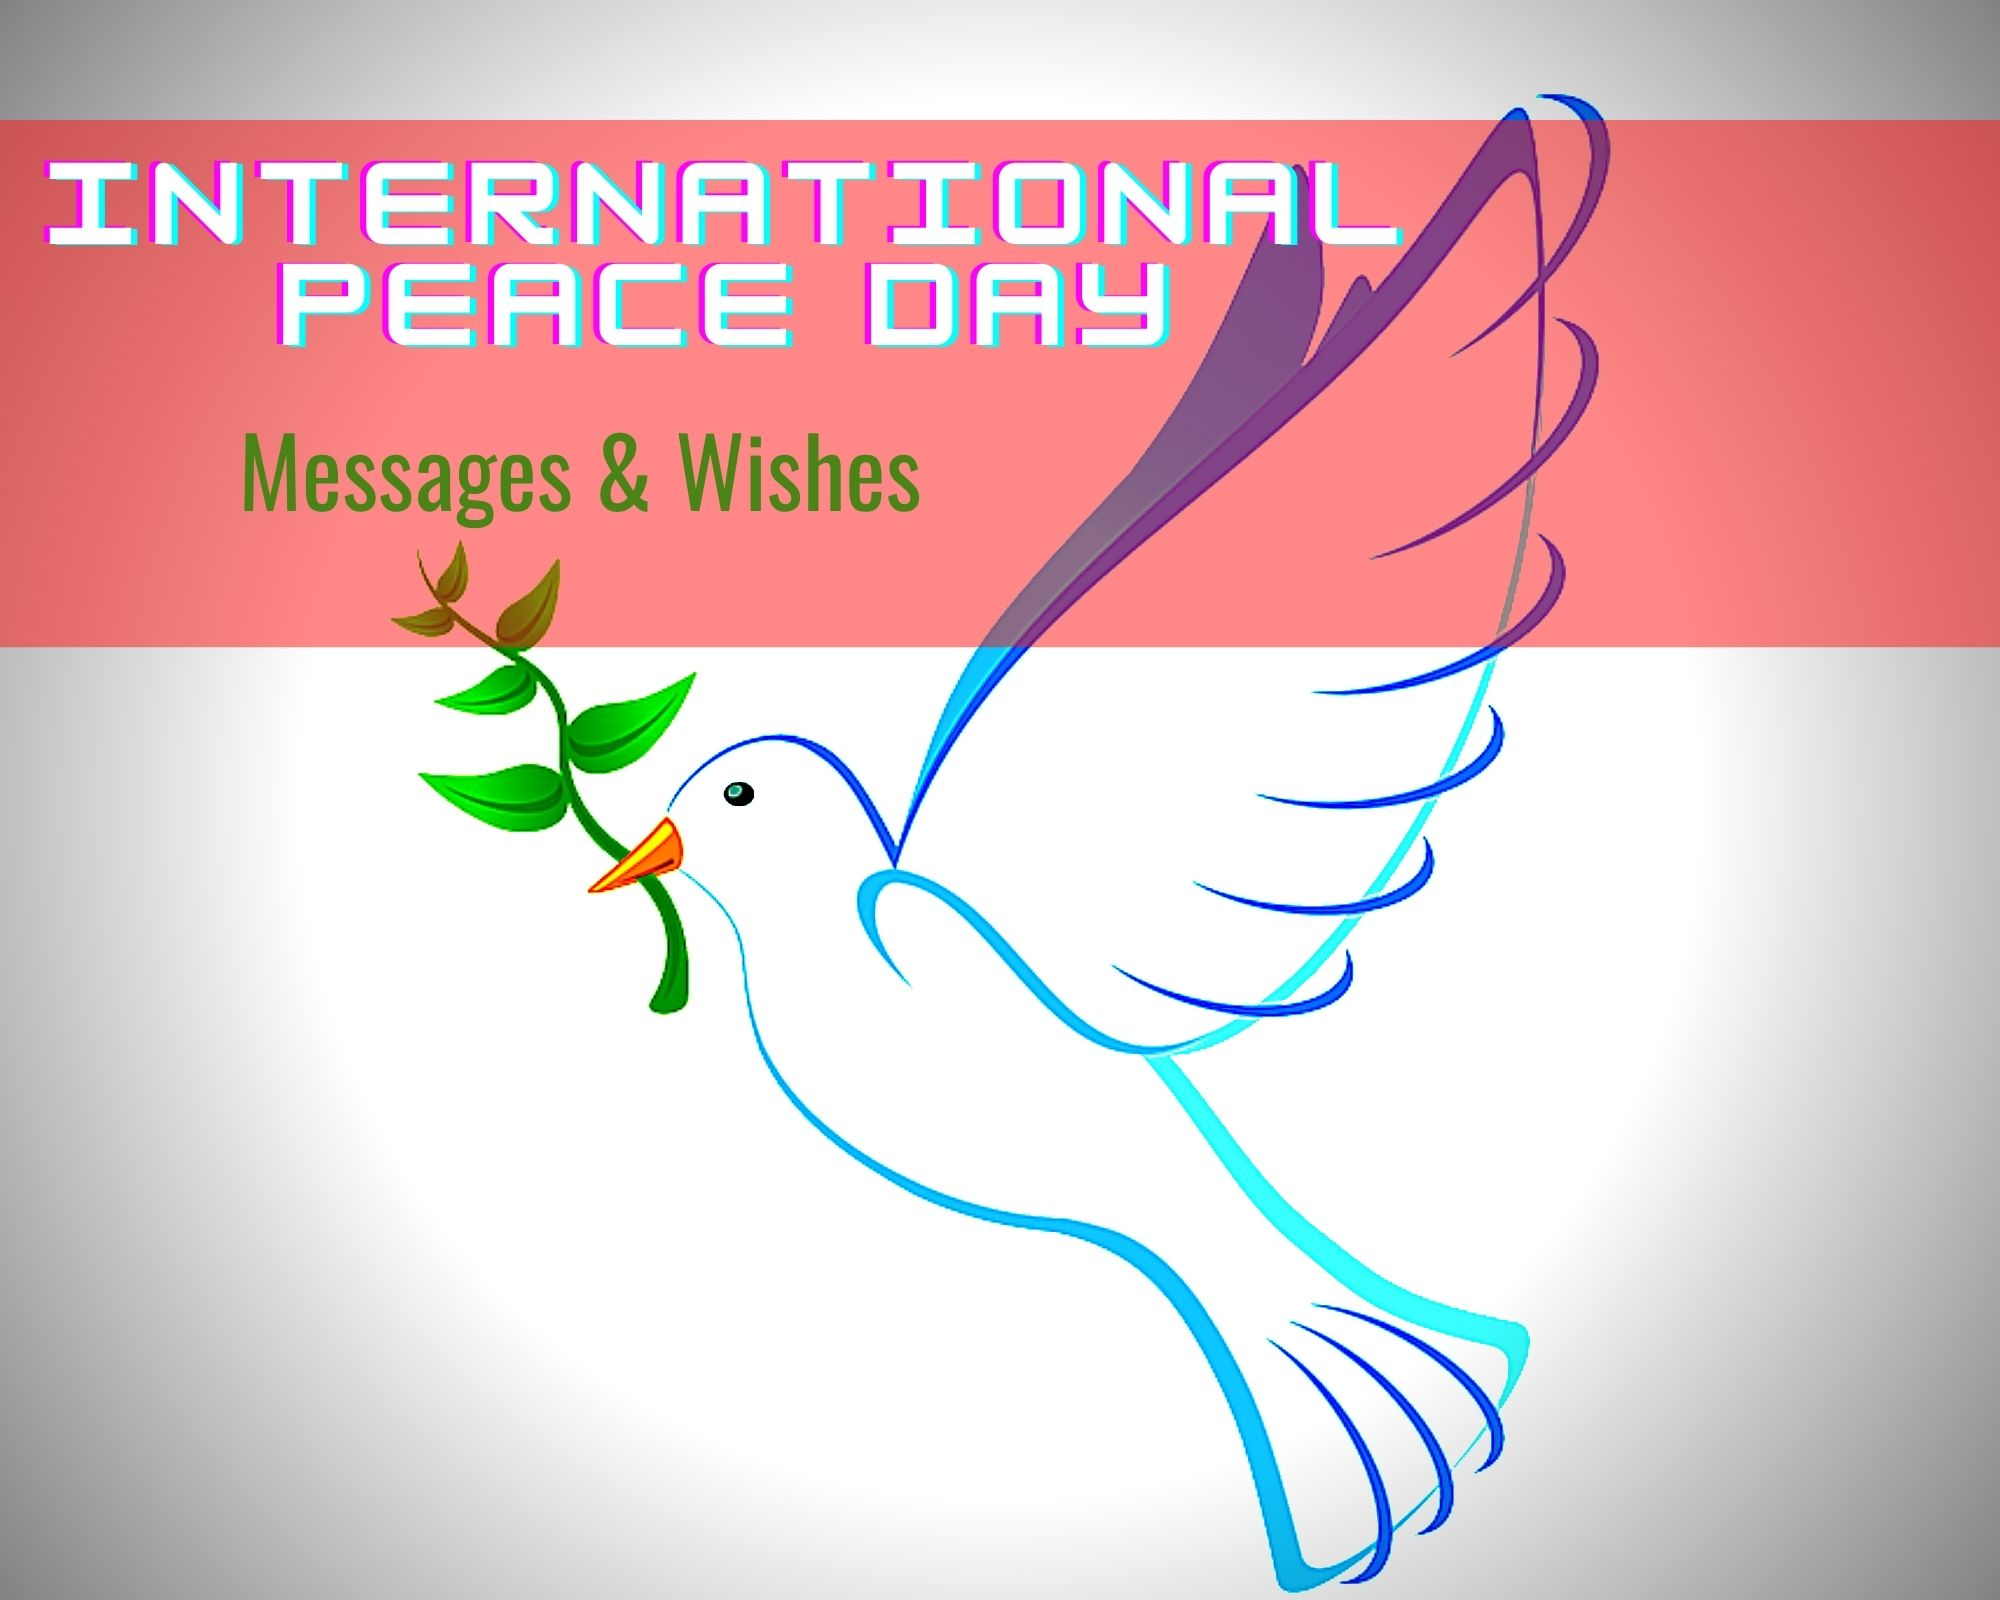 International Peace Day Messages & Wishes